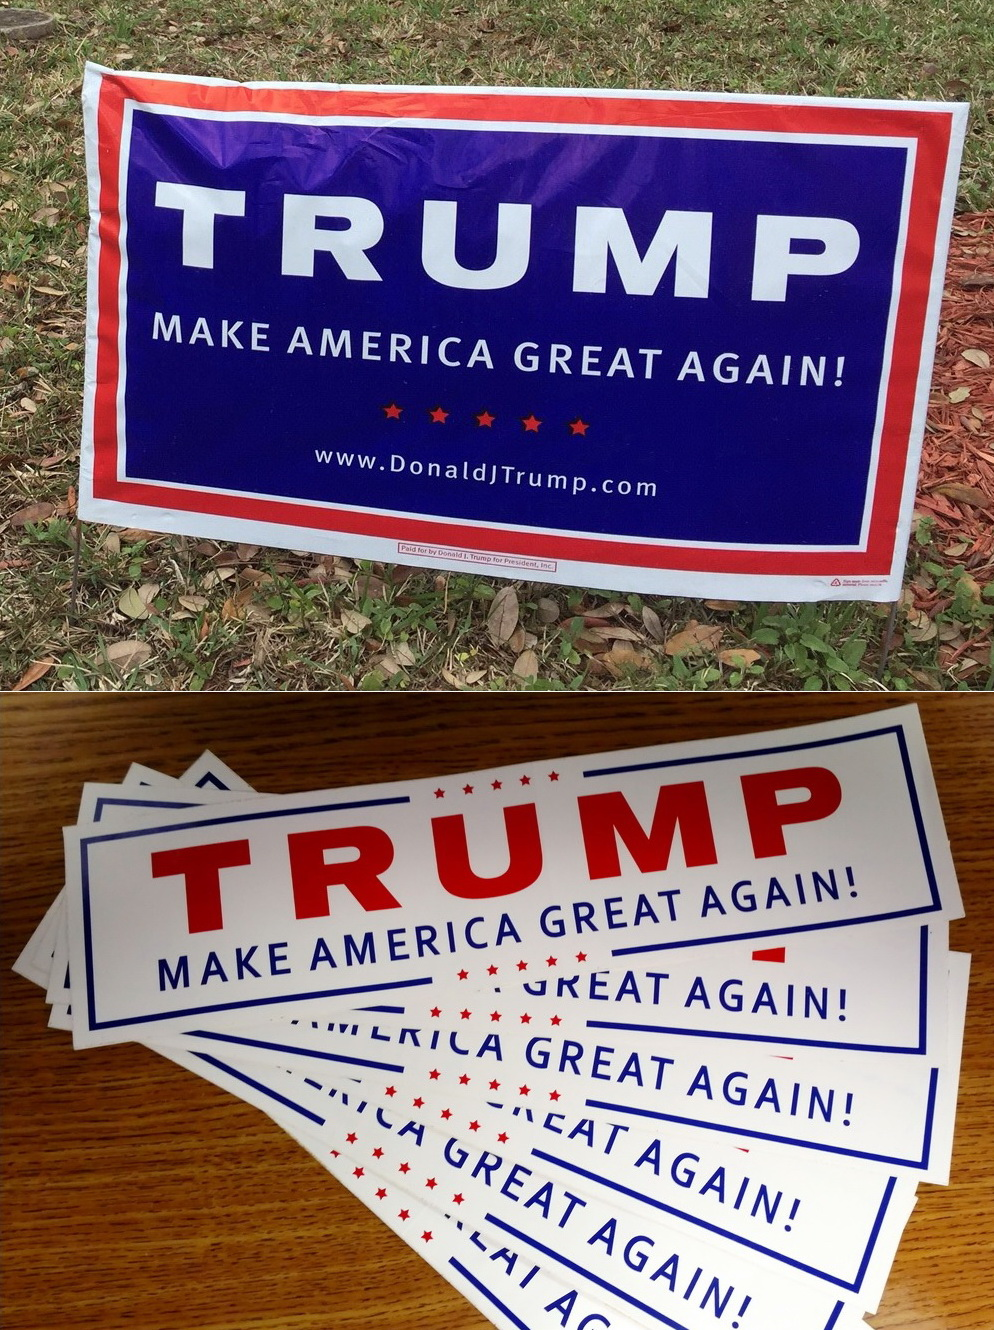 trump-signs-bumper-stickers